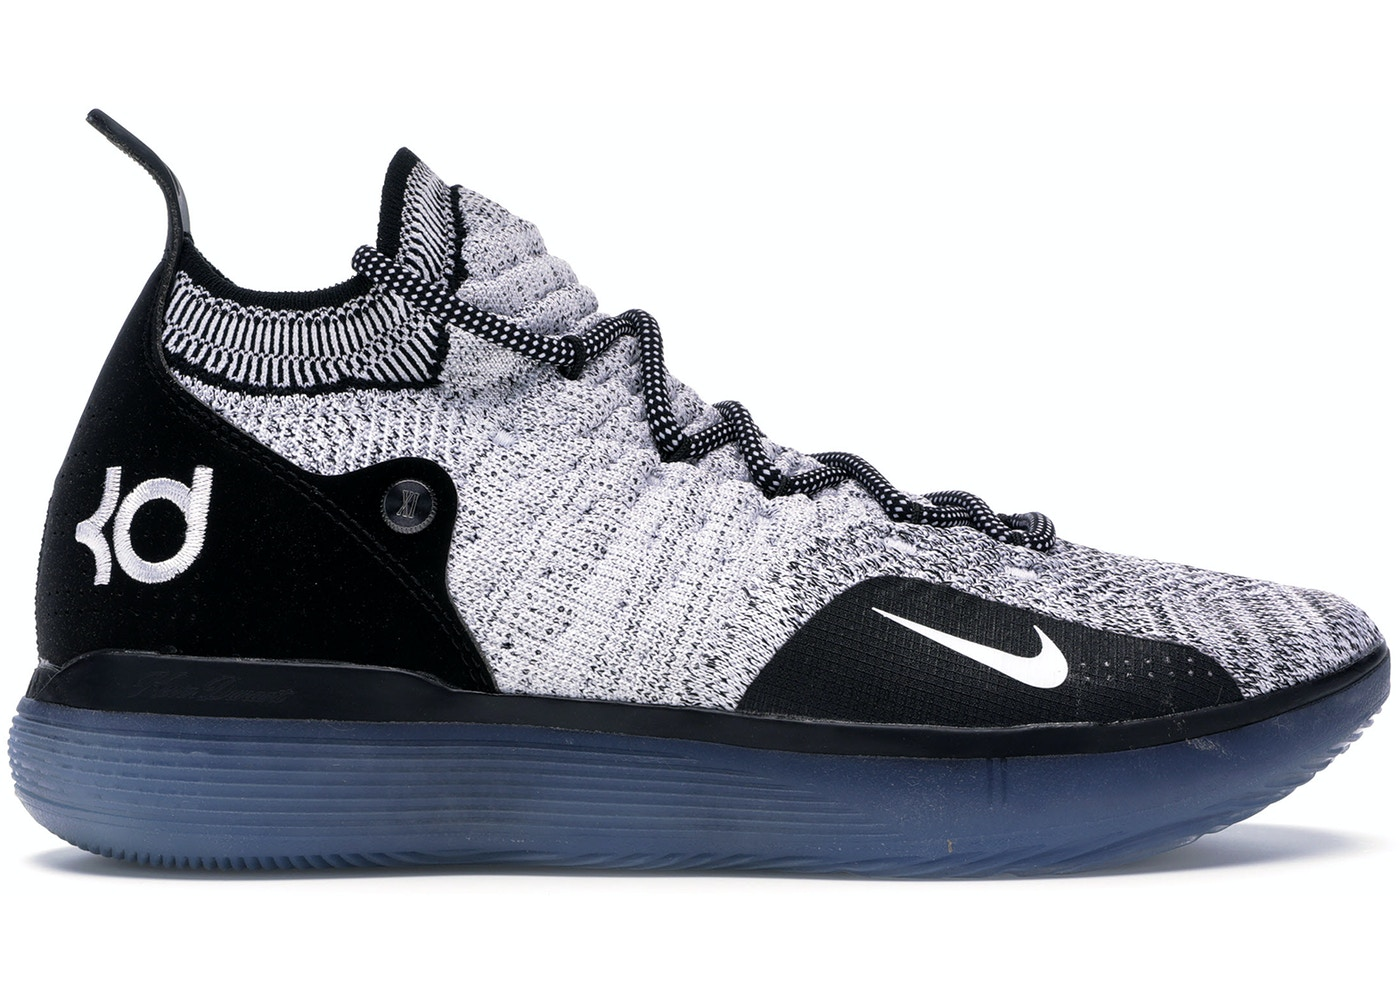 premium selection cda7a 122d7 Buy Nike KD Shoes   Deadstock Sneakers